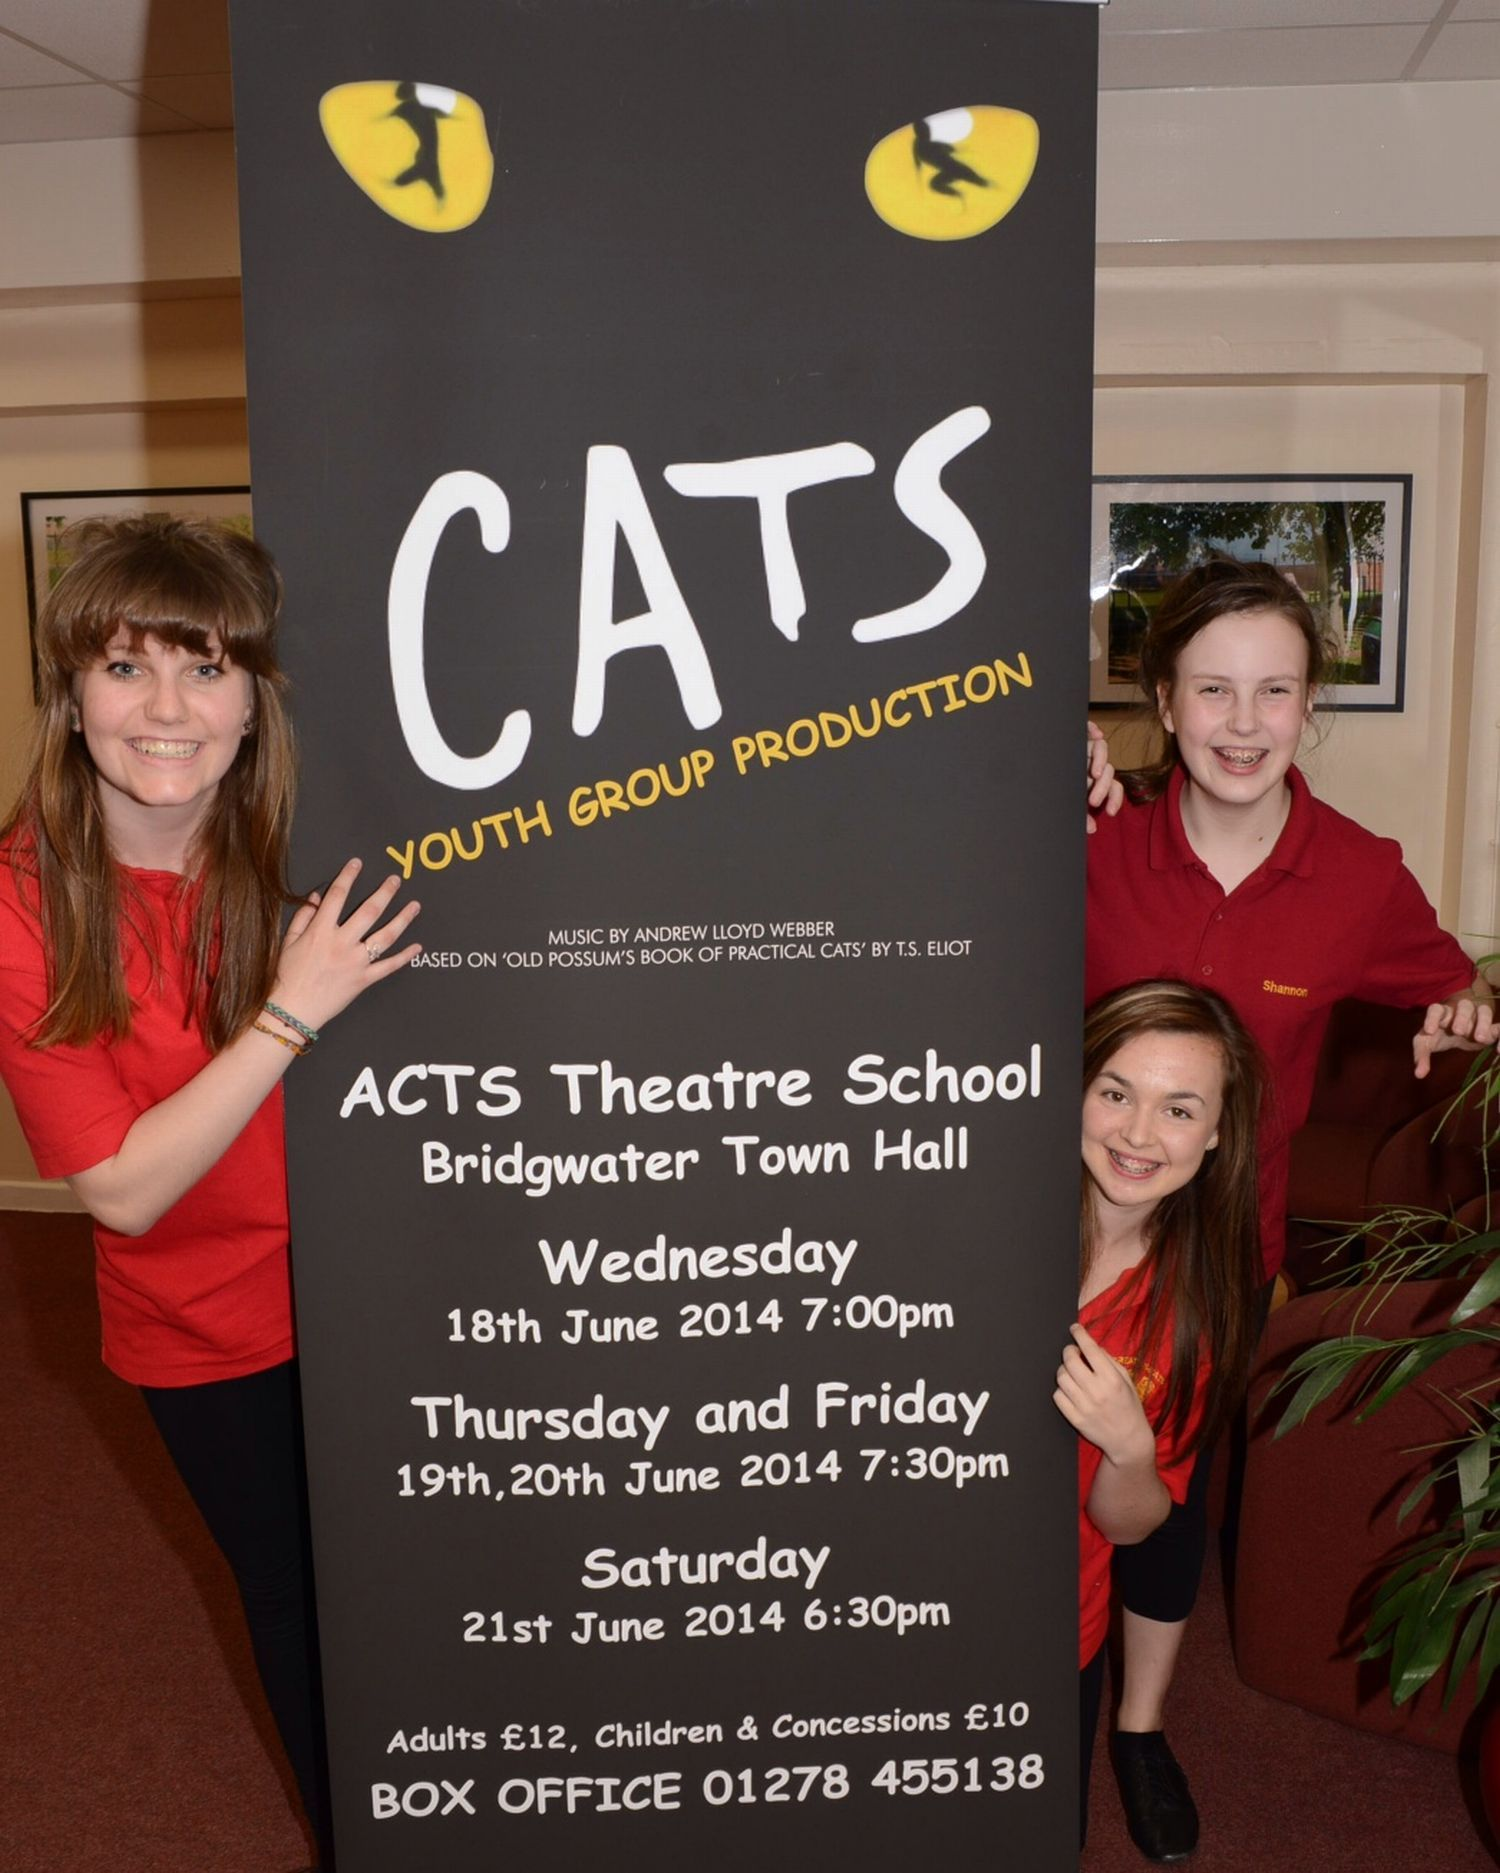 ACTS prepare to stage CATS performance in Bridgwater